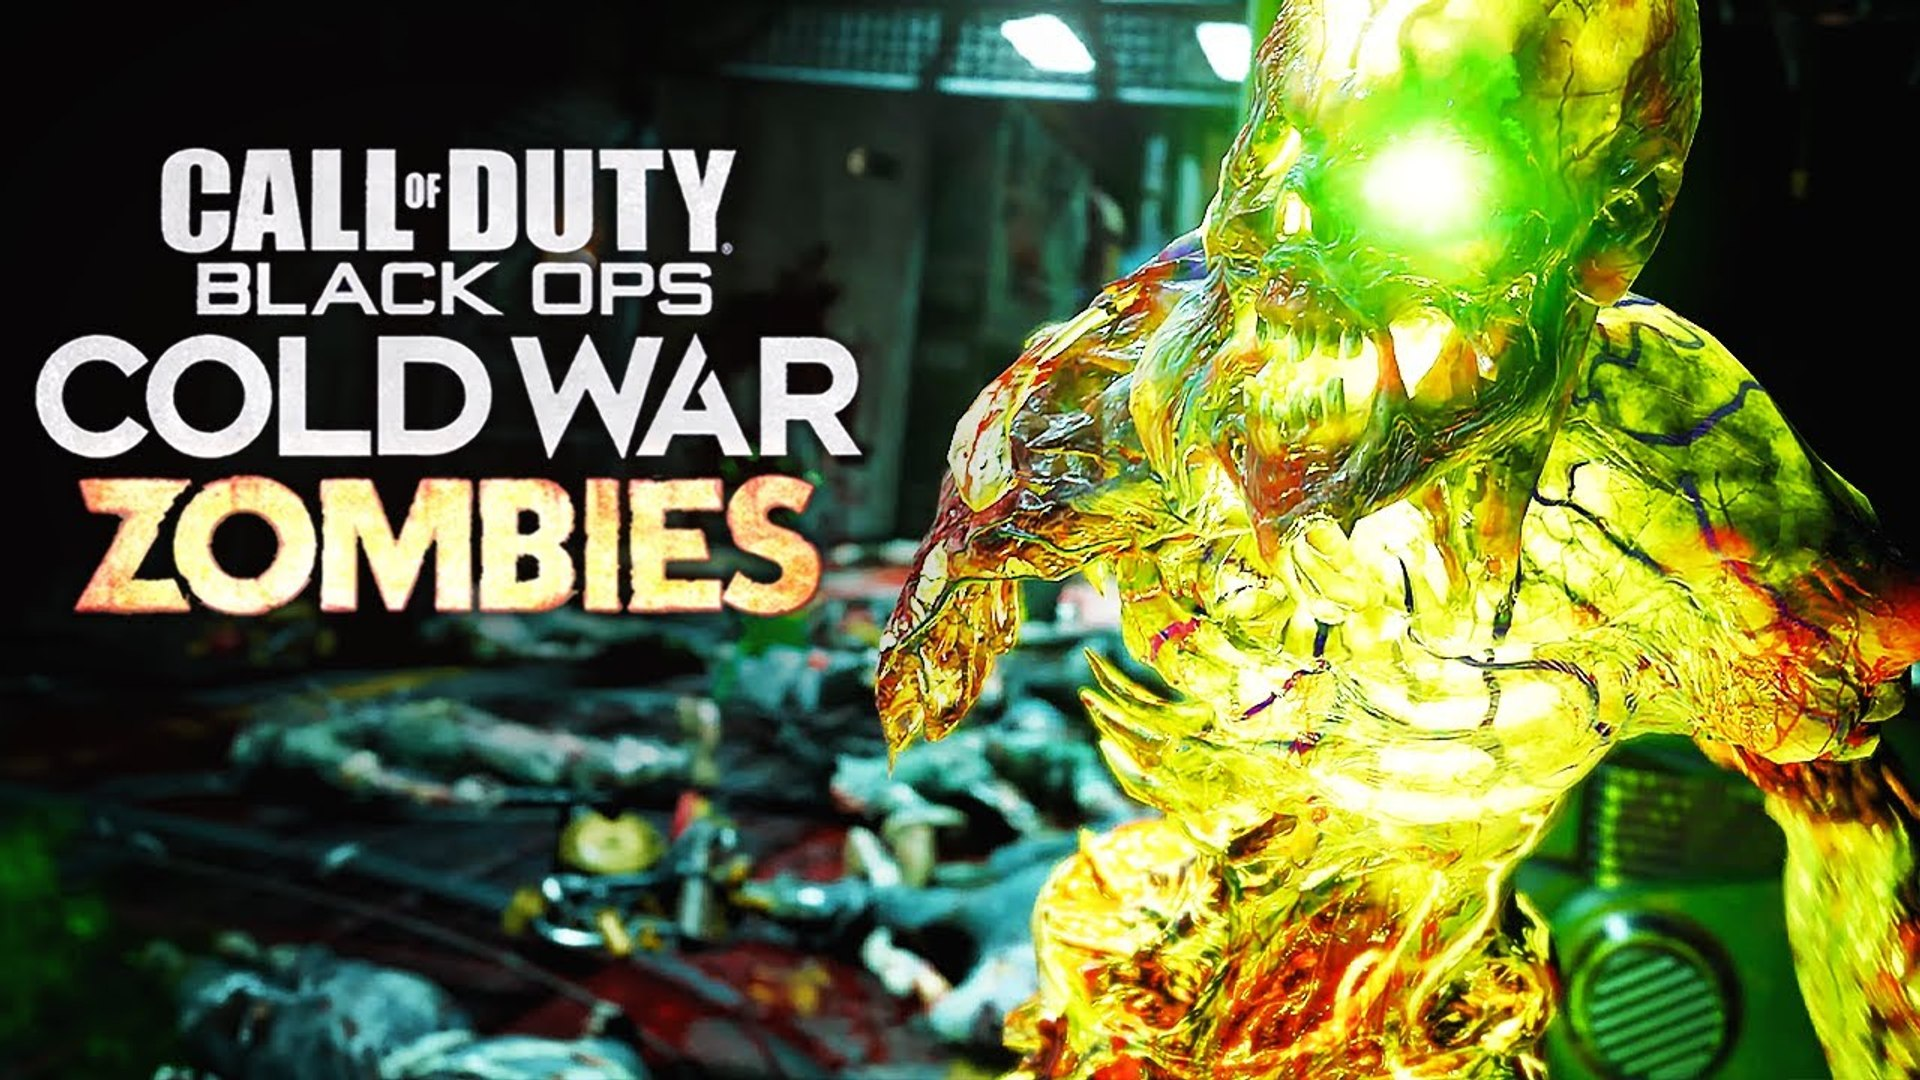 Call Of Duty Black Ops Cold War Official Ps5 Zombies Gameplay Trailer Video Dailymotion